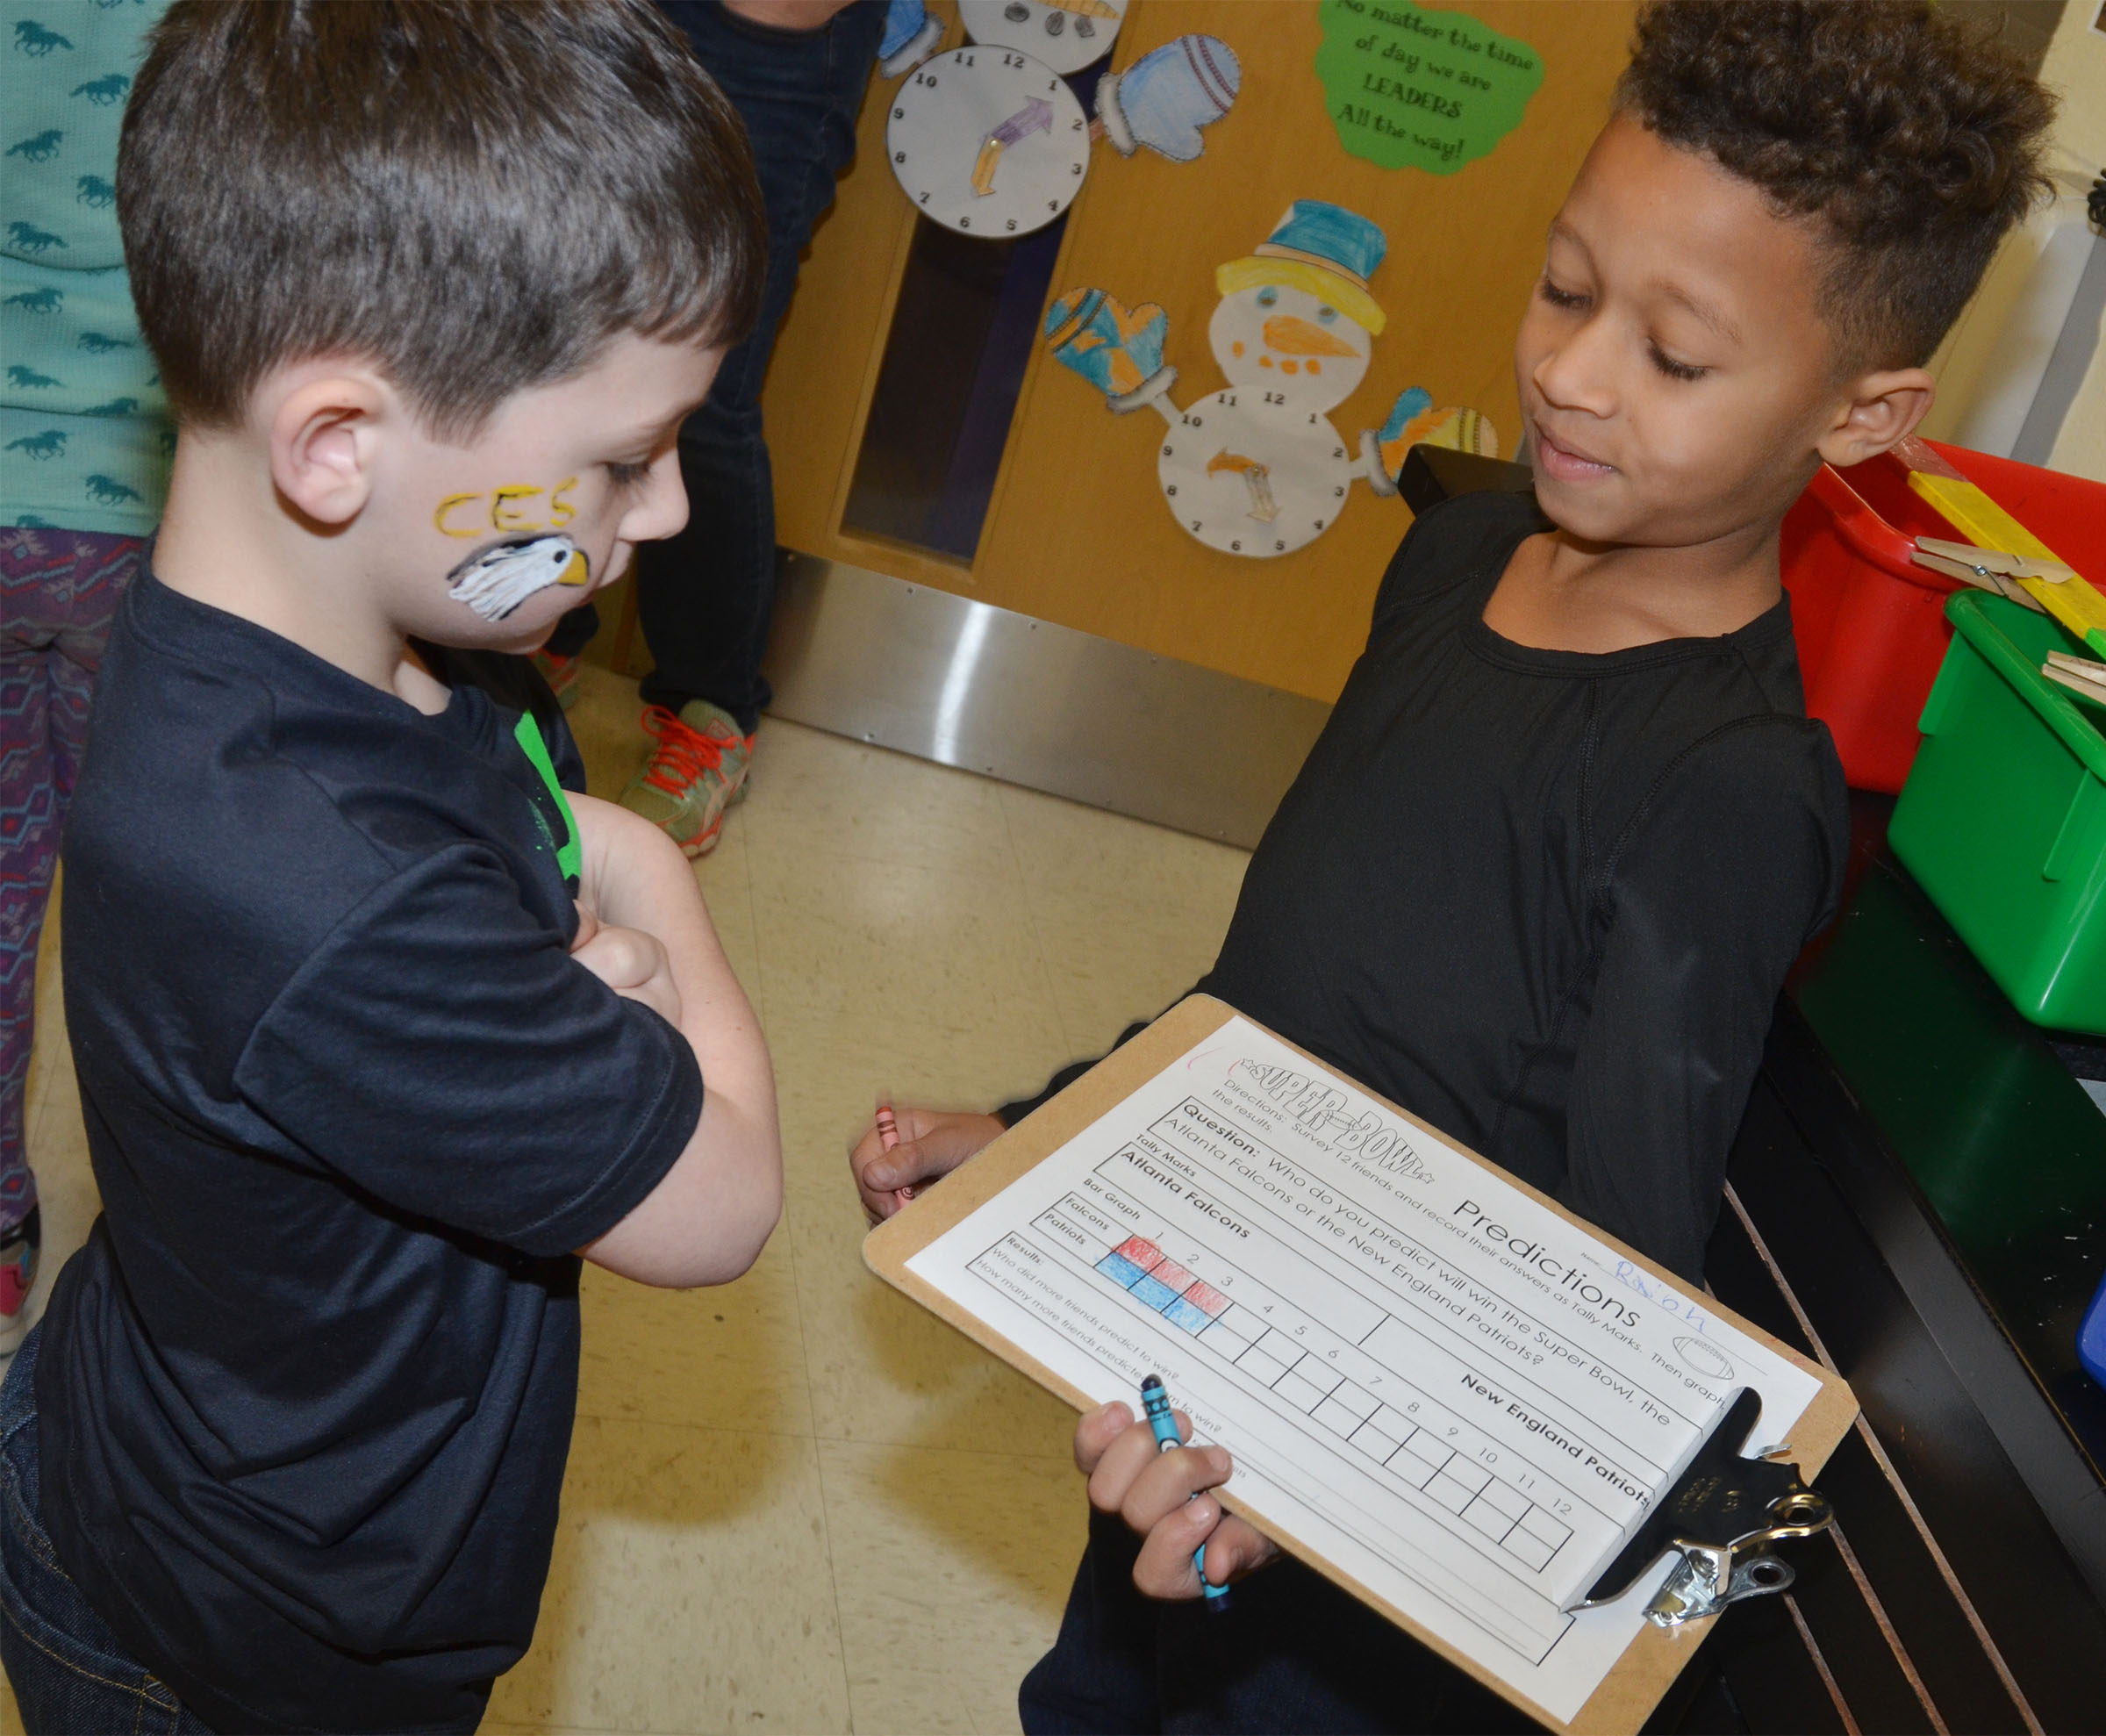 CES second-grader Rajon Taylor, at right, conducts a survey about which team his classmates believe will win the Super Bowl. At left is second-grader Codey Parks.